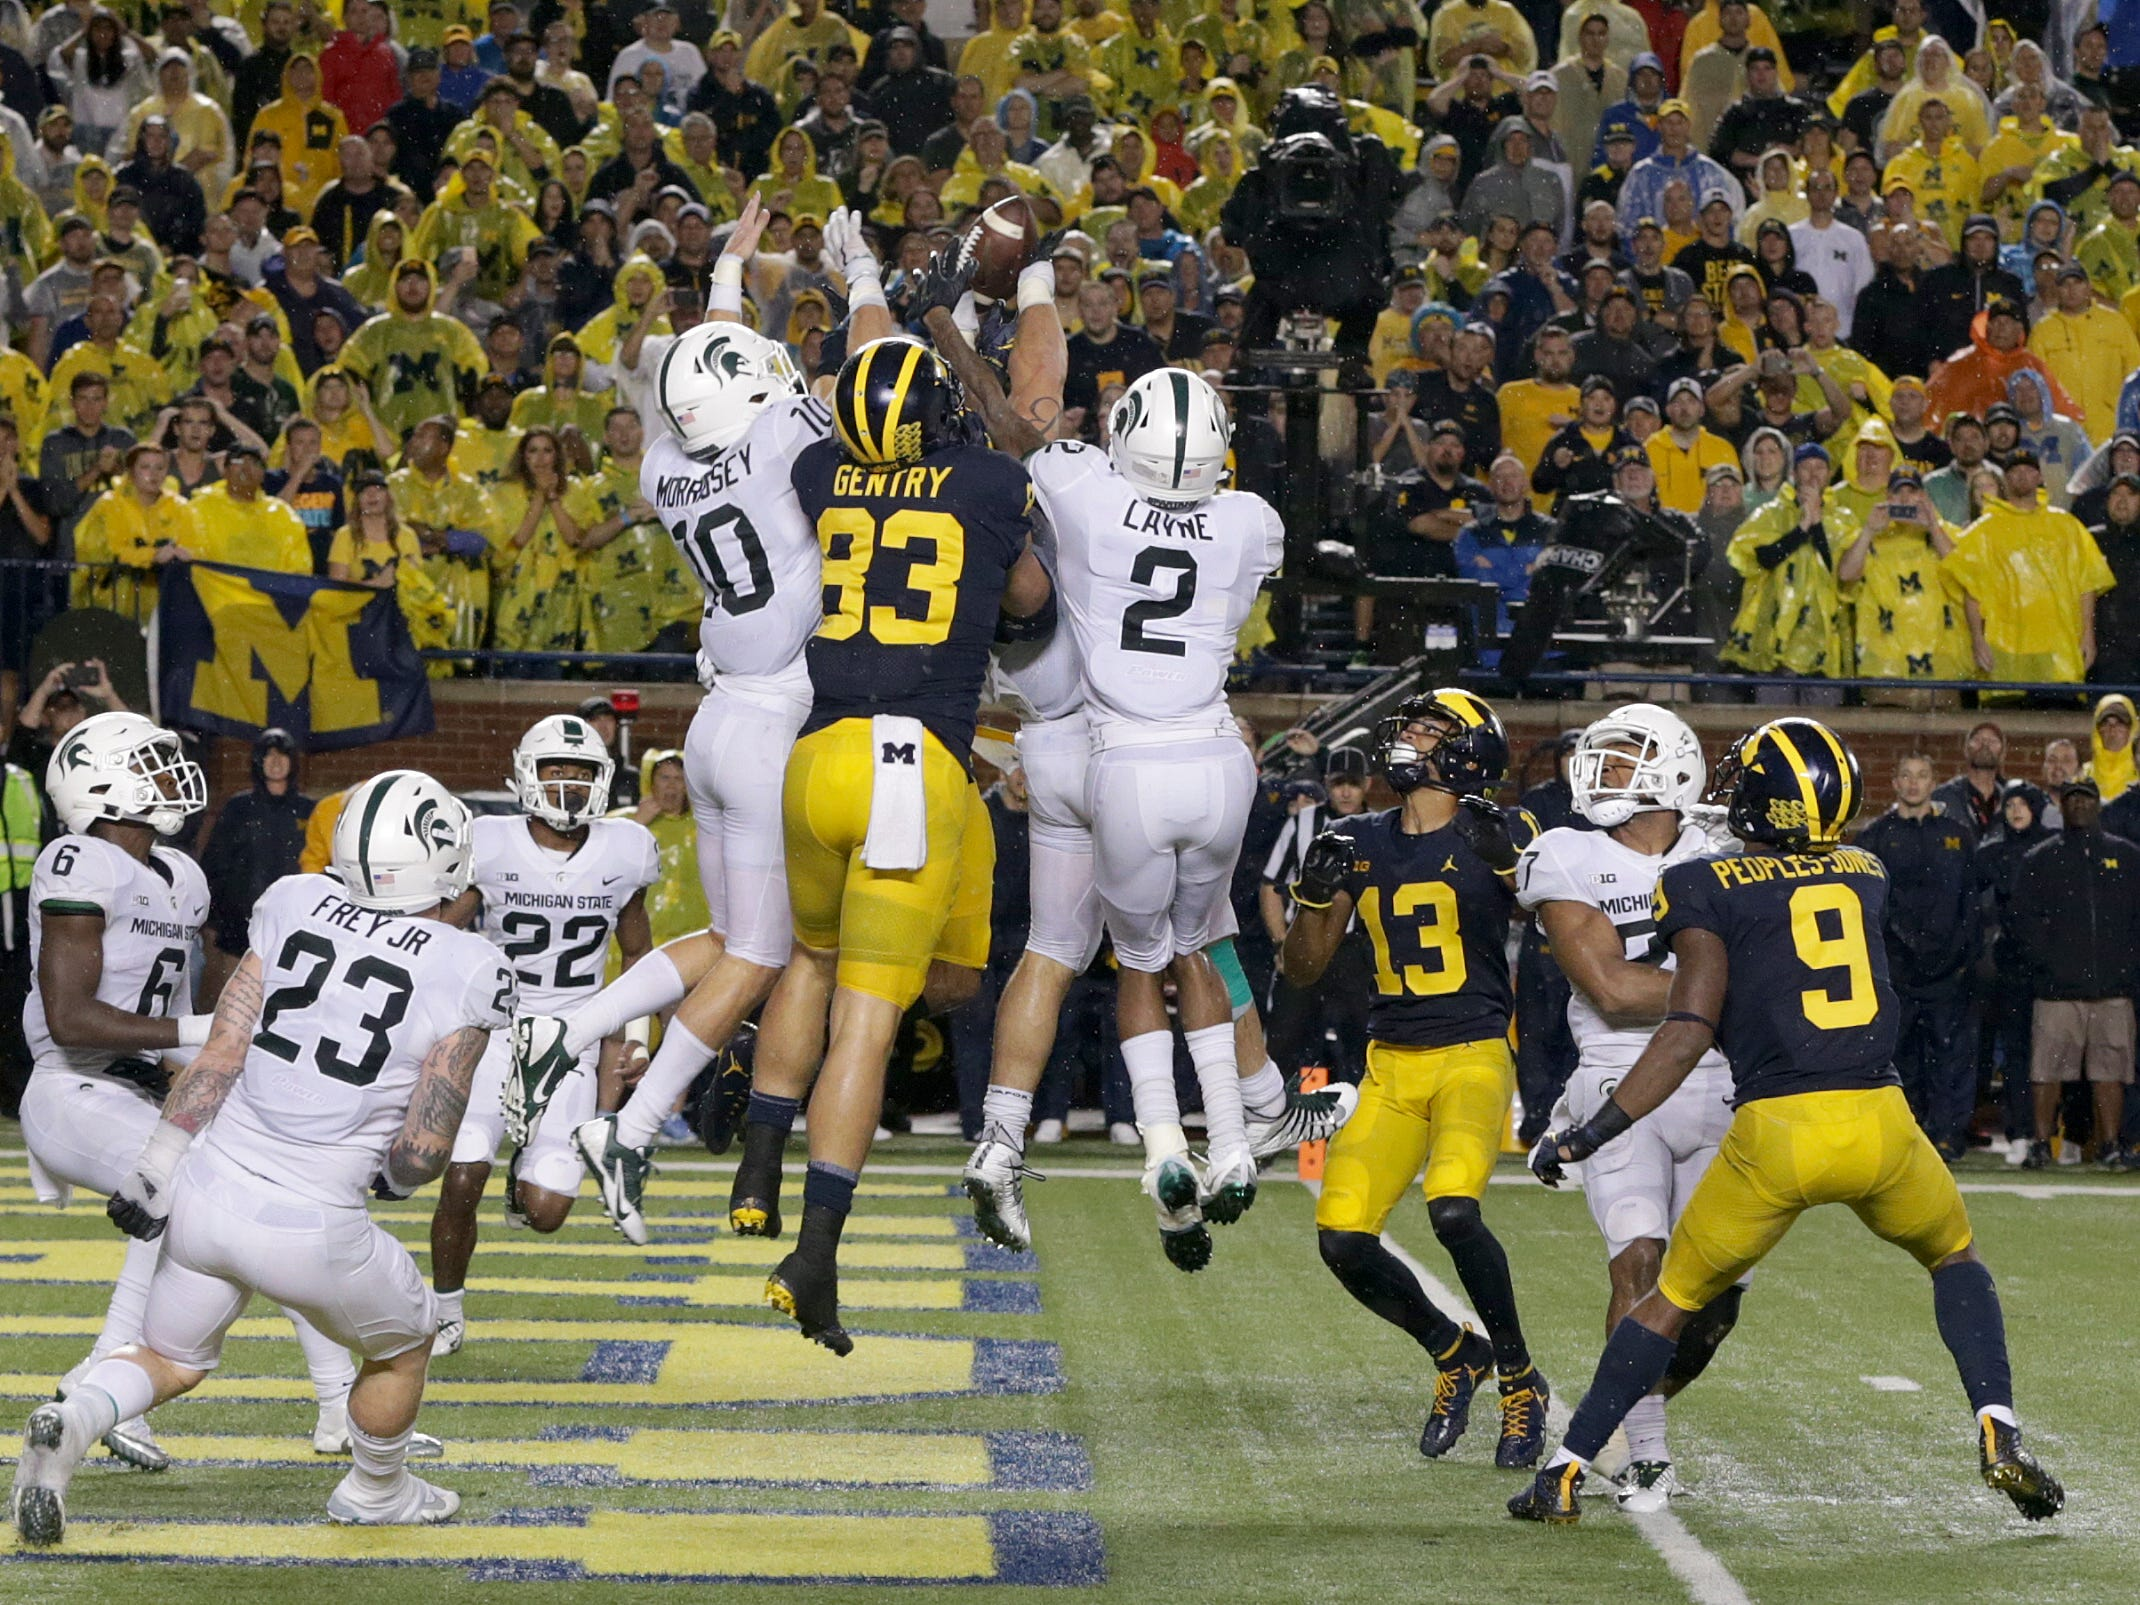 1. Michigan at Michigan State. When: Oct. 20. Where: East Lansing.  The buzz: The Spartans have dominated this series the past 10 years, winning eight of the 10 contests.